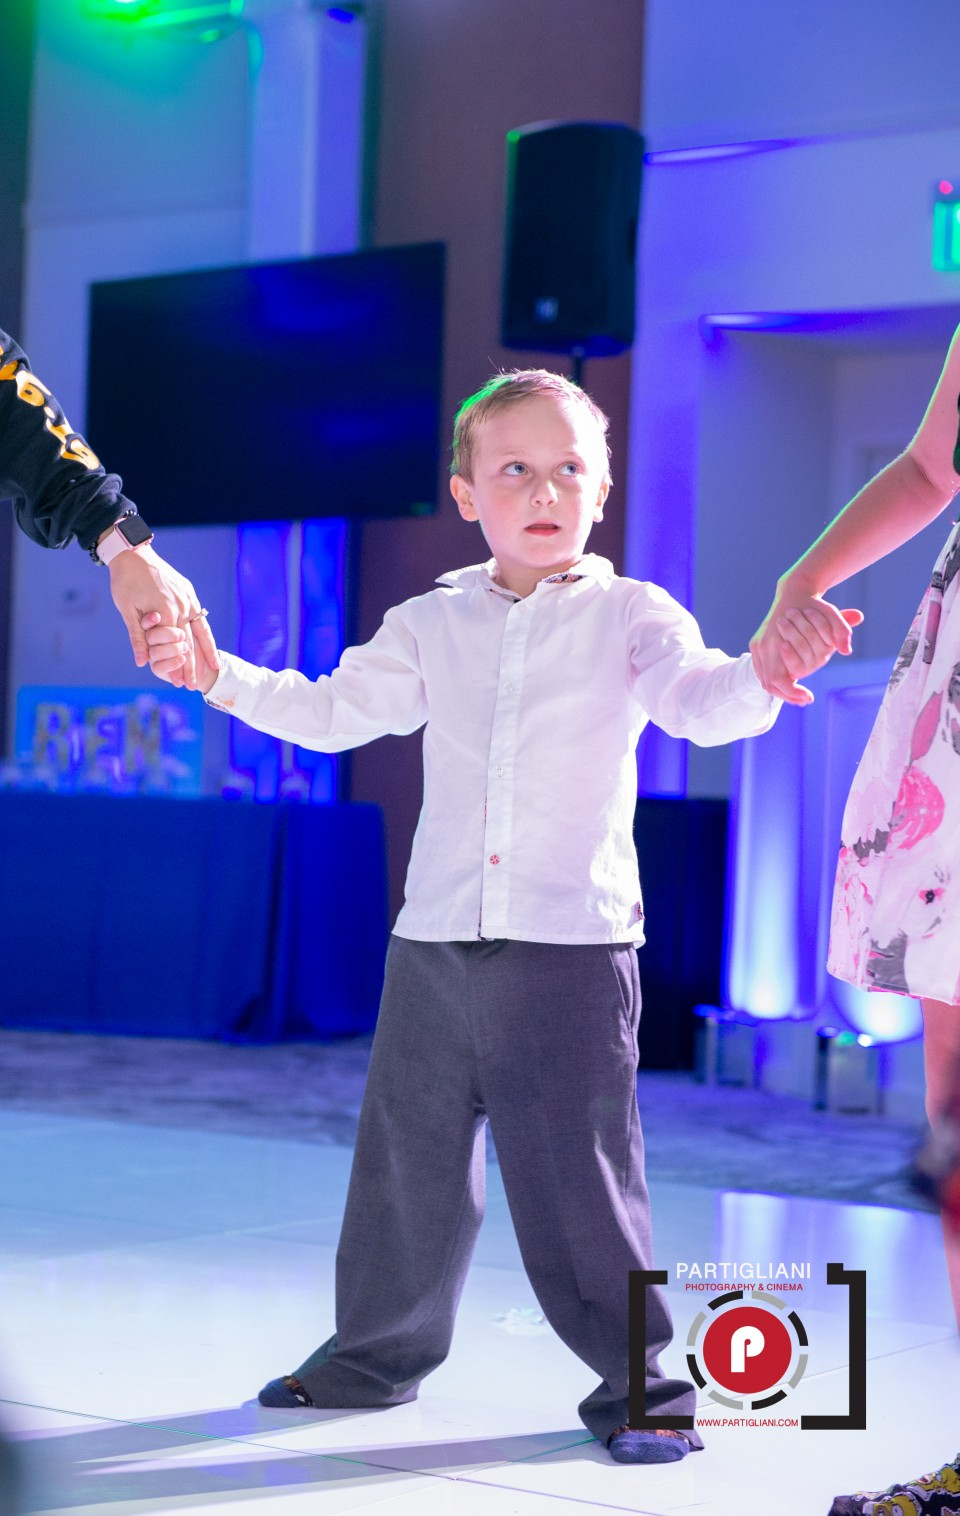 TEMPLE BETH EL, PARTIGLIANI PHOTOGRAPHY- BEN'S BAR MITZVAH-161